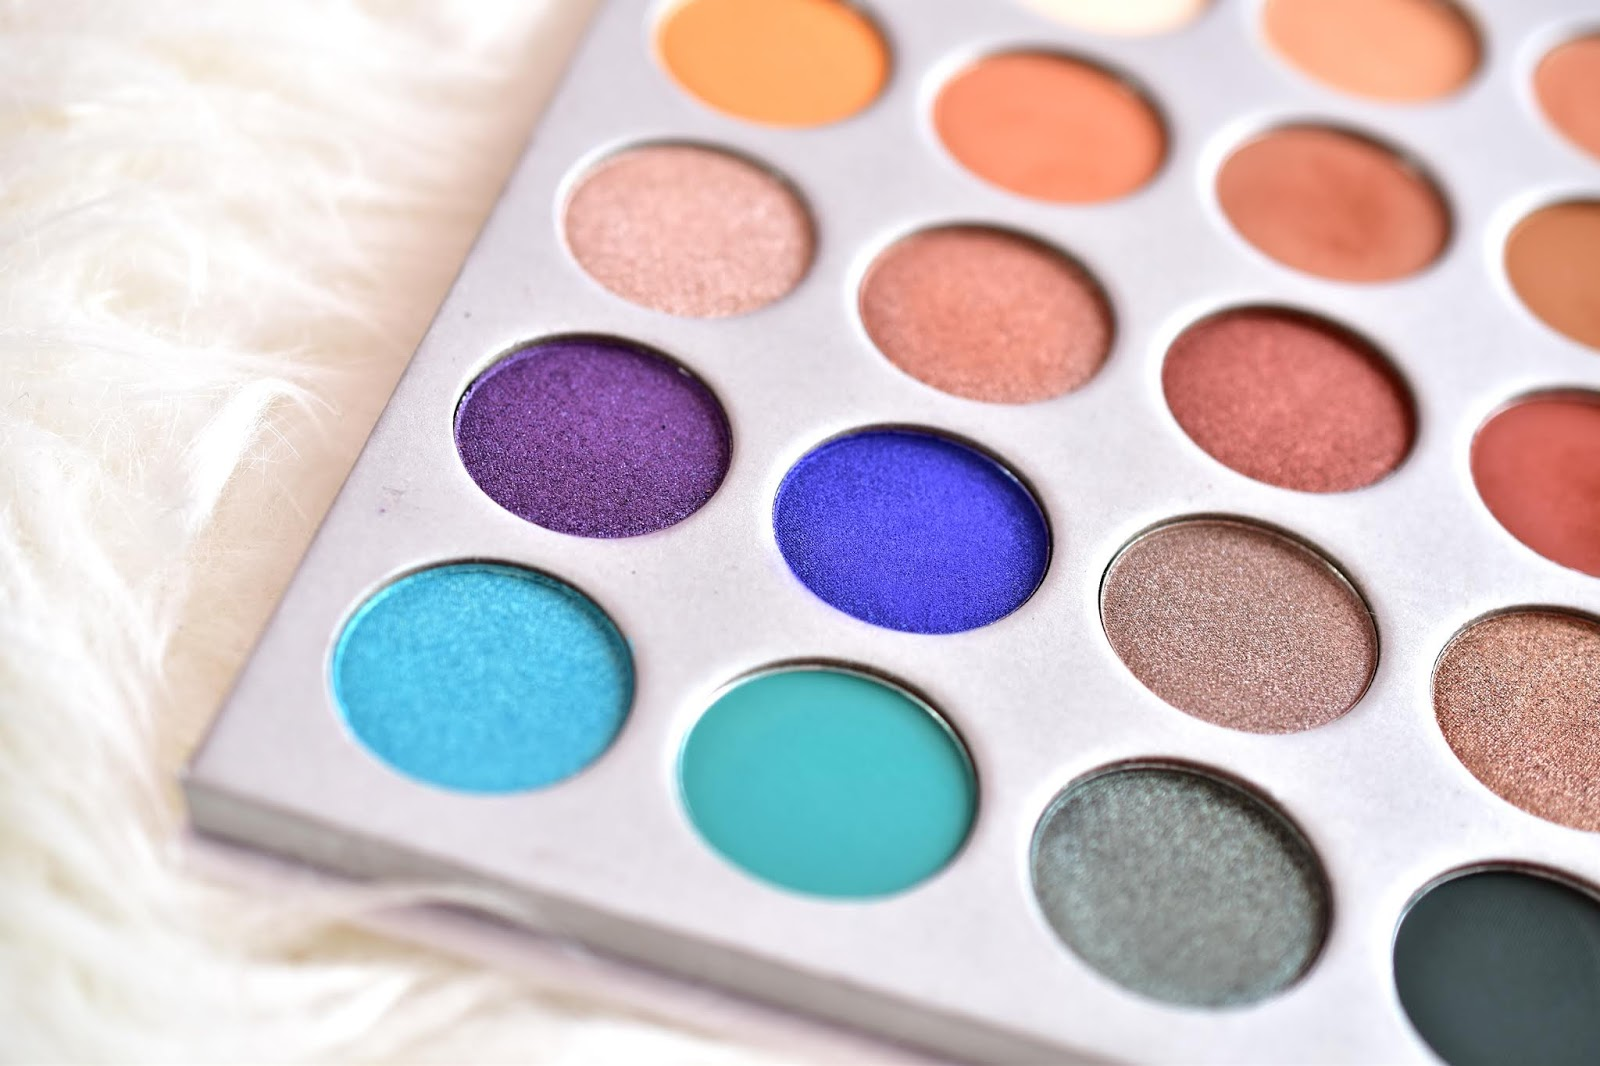 Morphe The Jacklyn Hill Palette